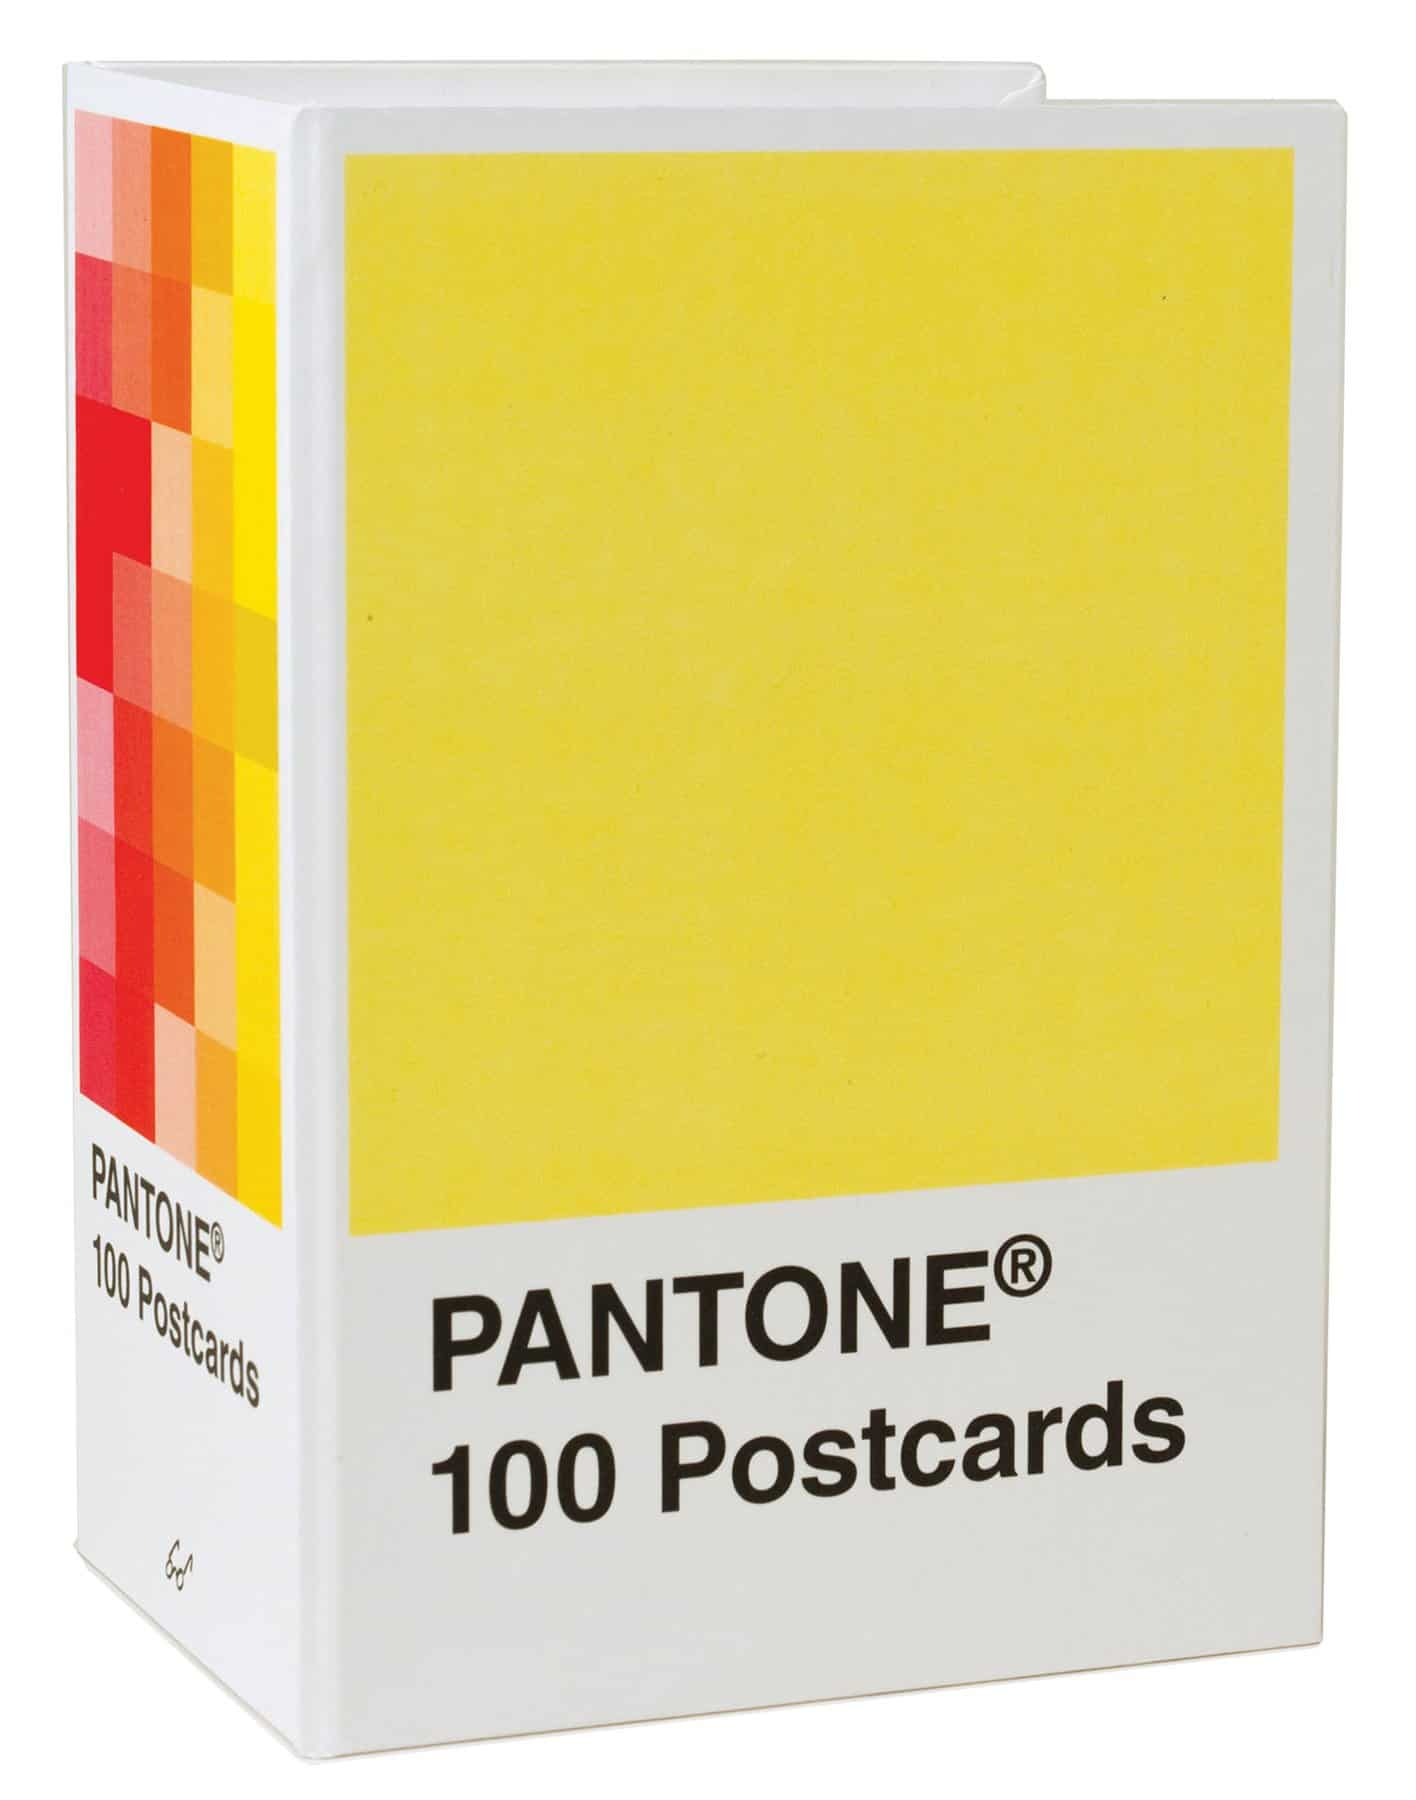 Discovering Pantone Postcard Book